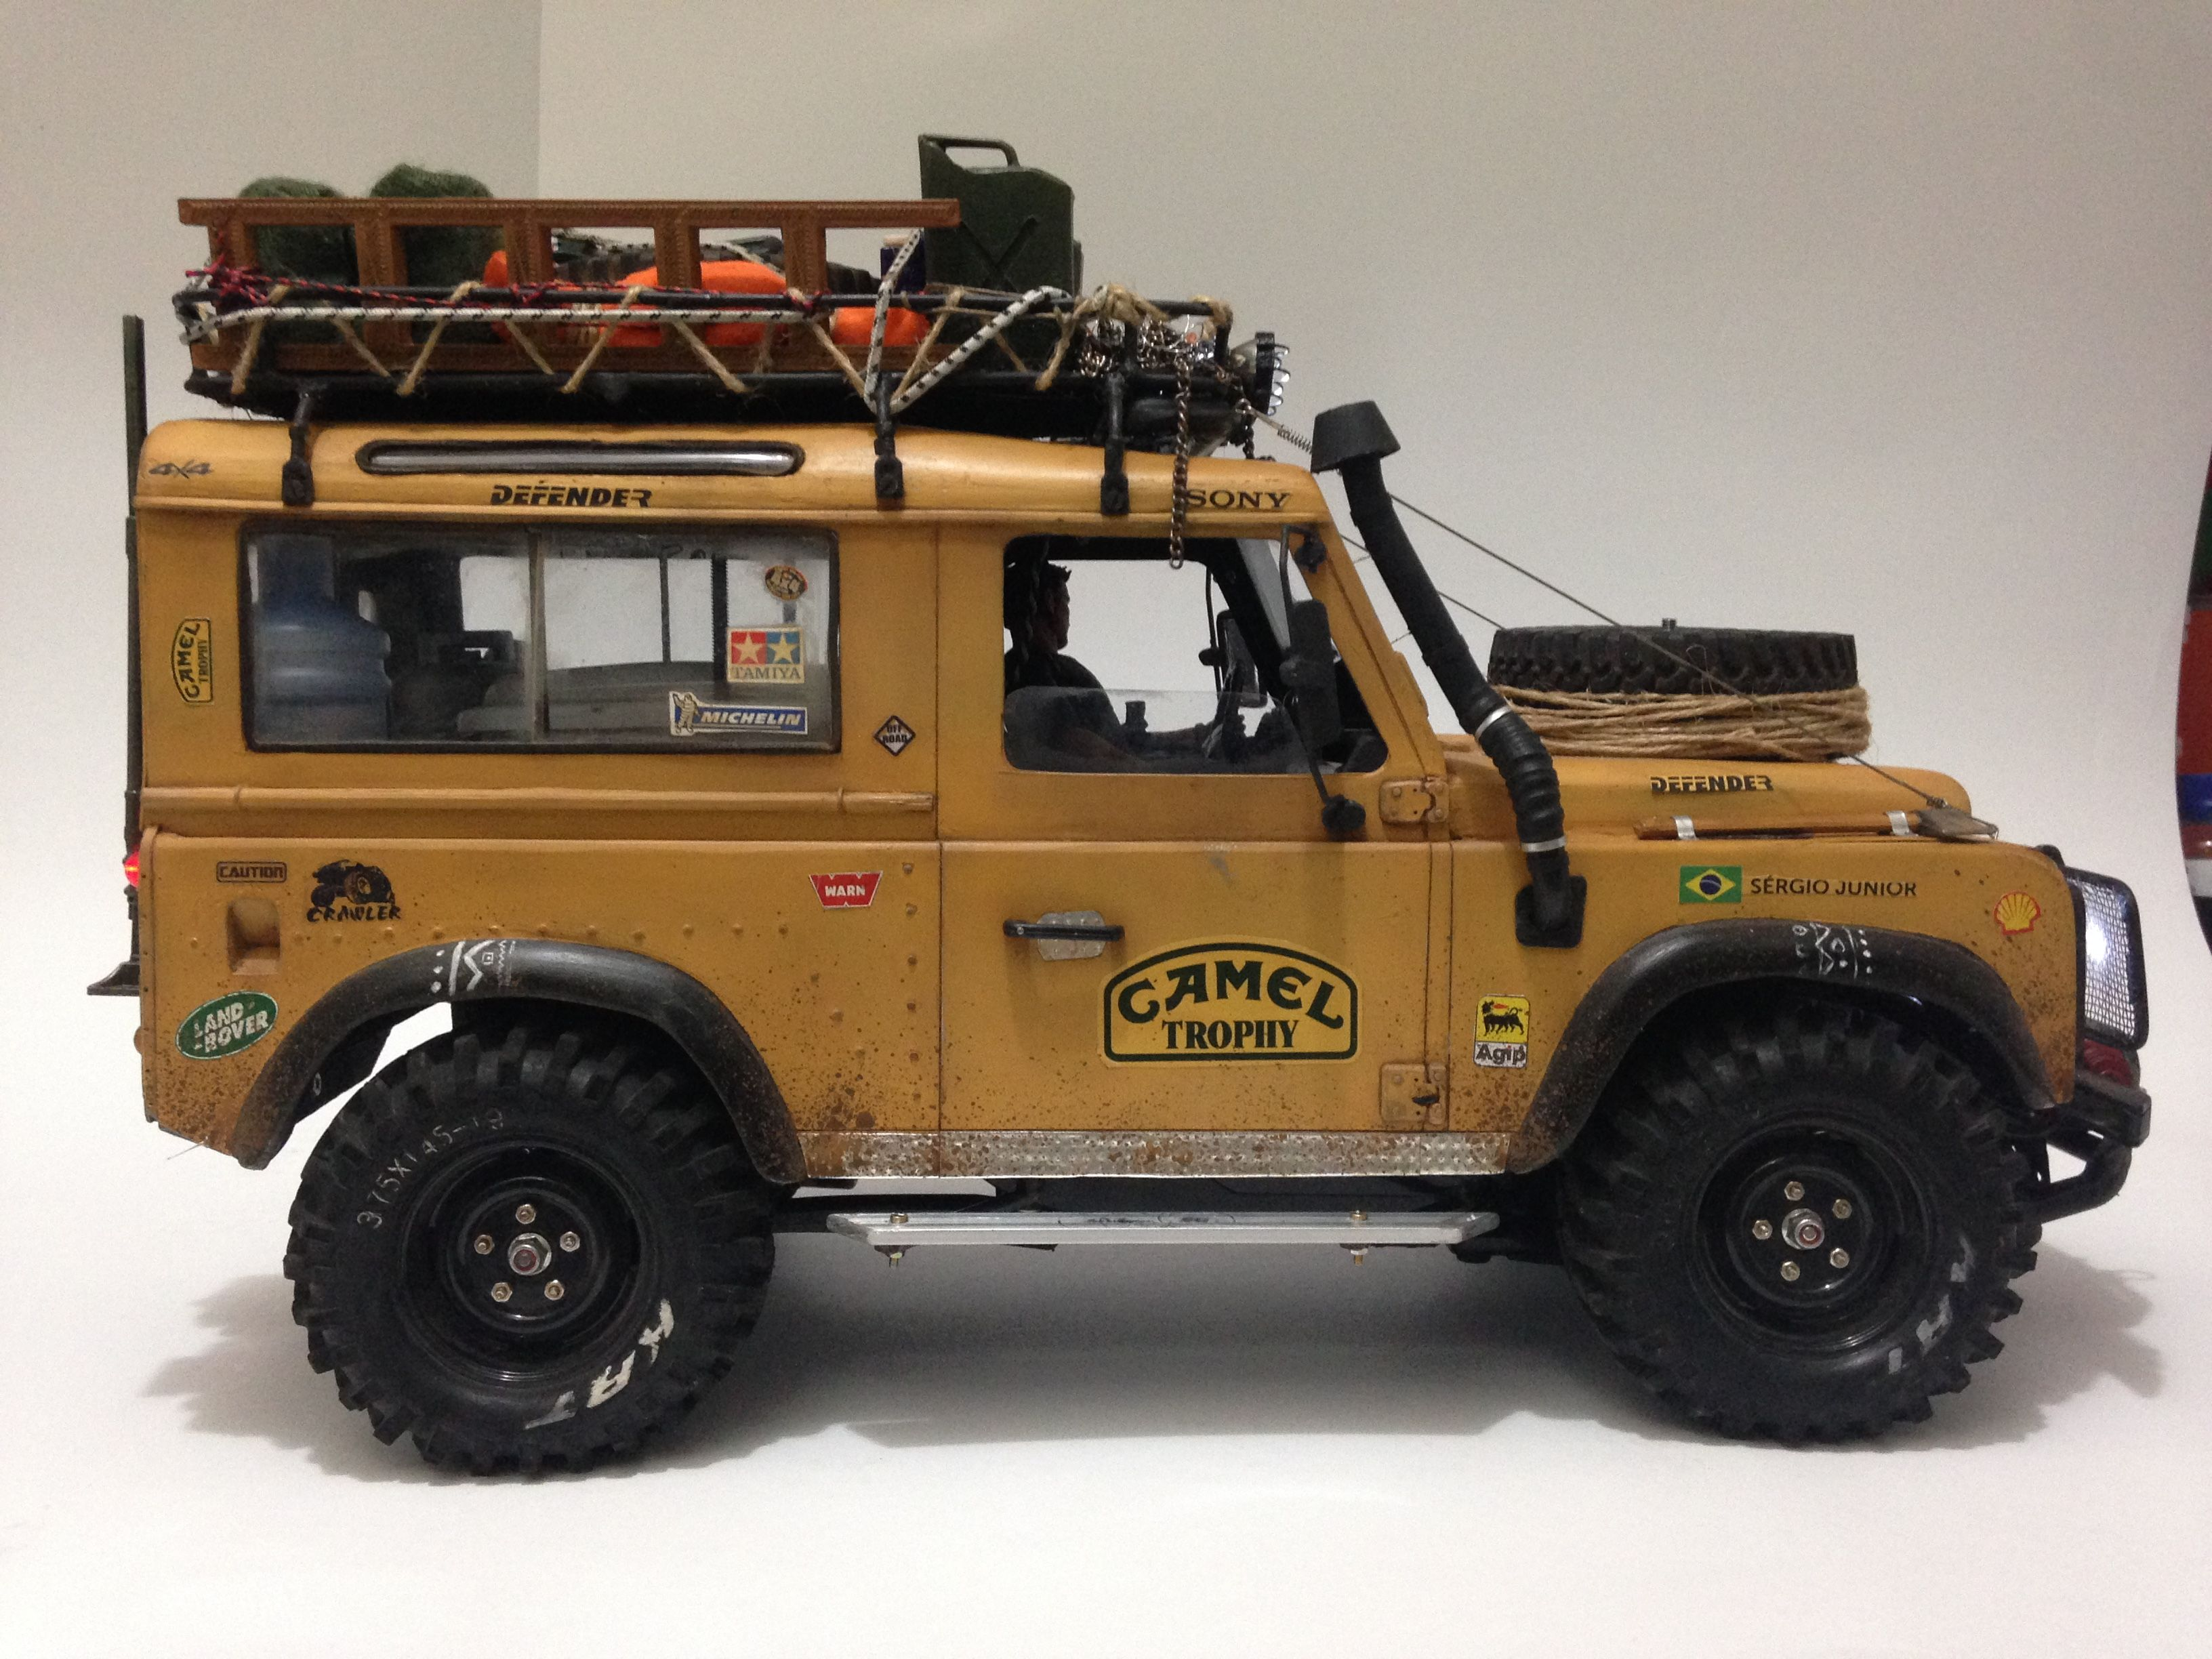 Rc Land Rover Defender Karosserie : pin on rcs ~ Aude.kayakingforconservation.com Haus und Dekorationen